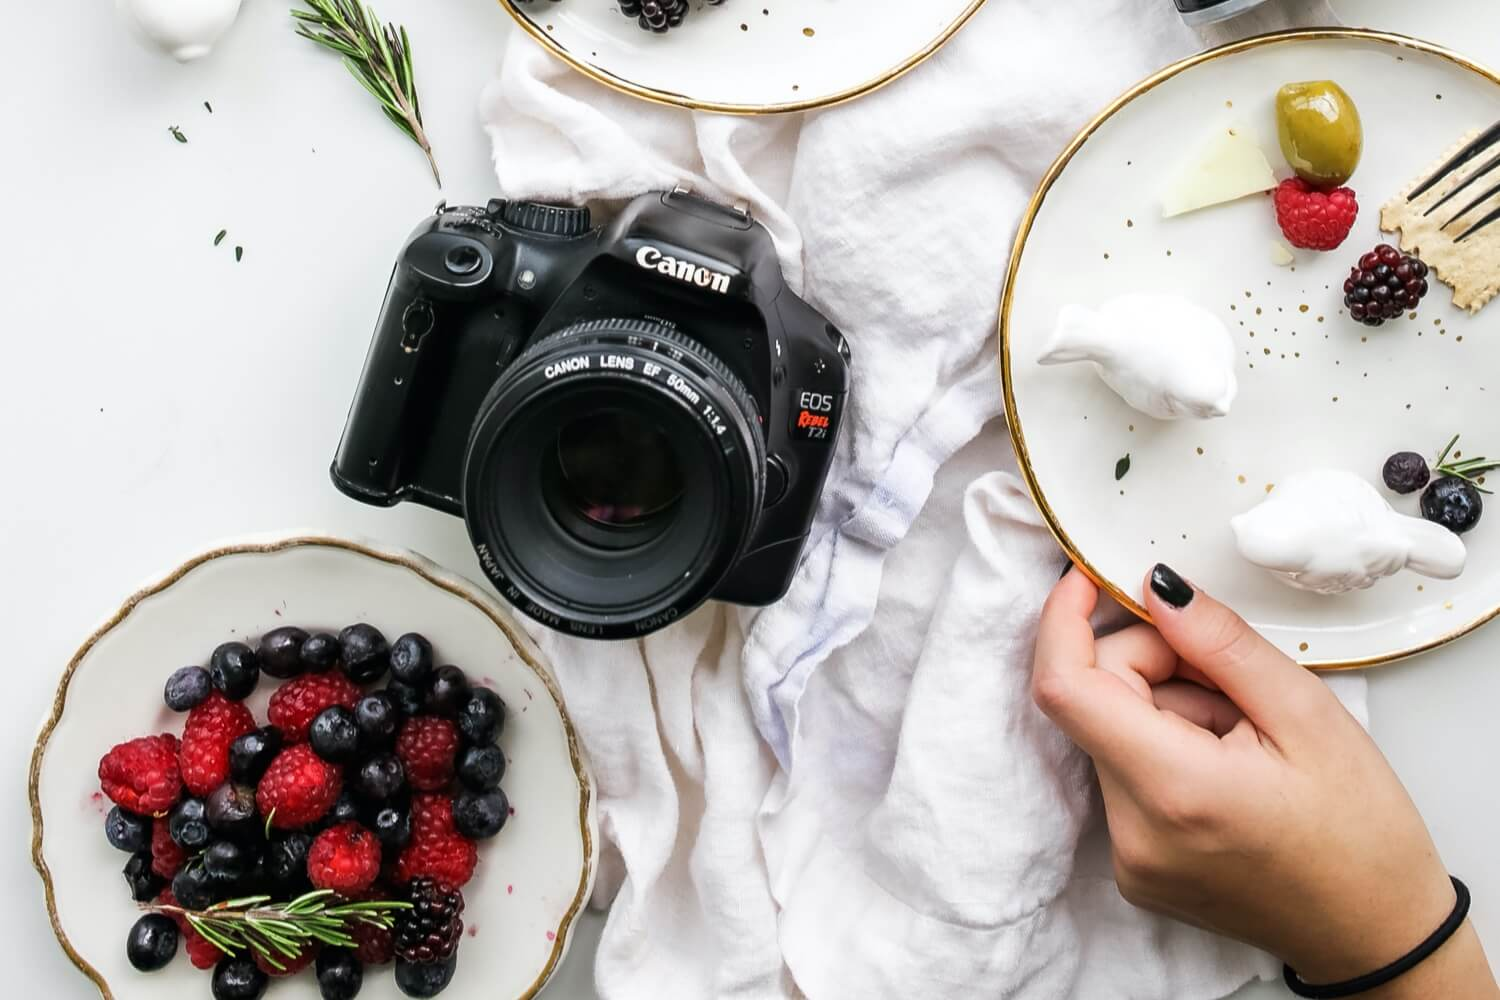 A woman eating dessert with an SLR camera on the table.